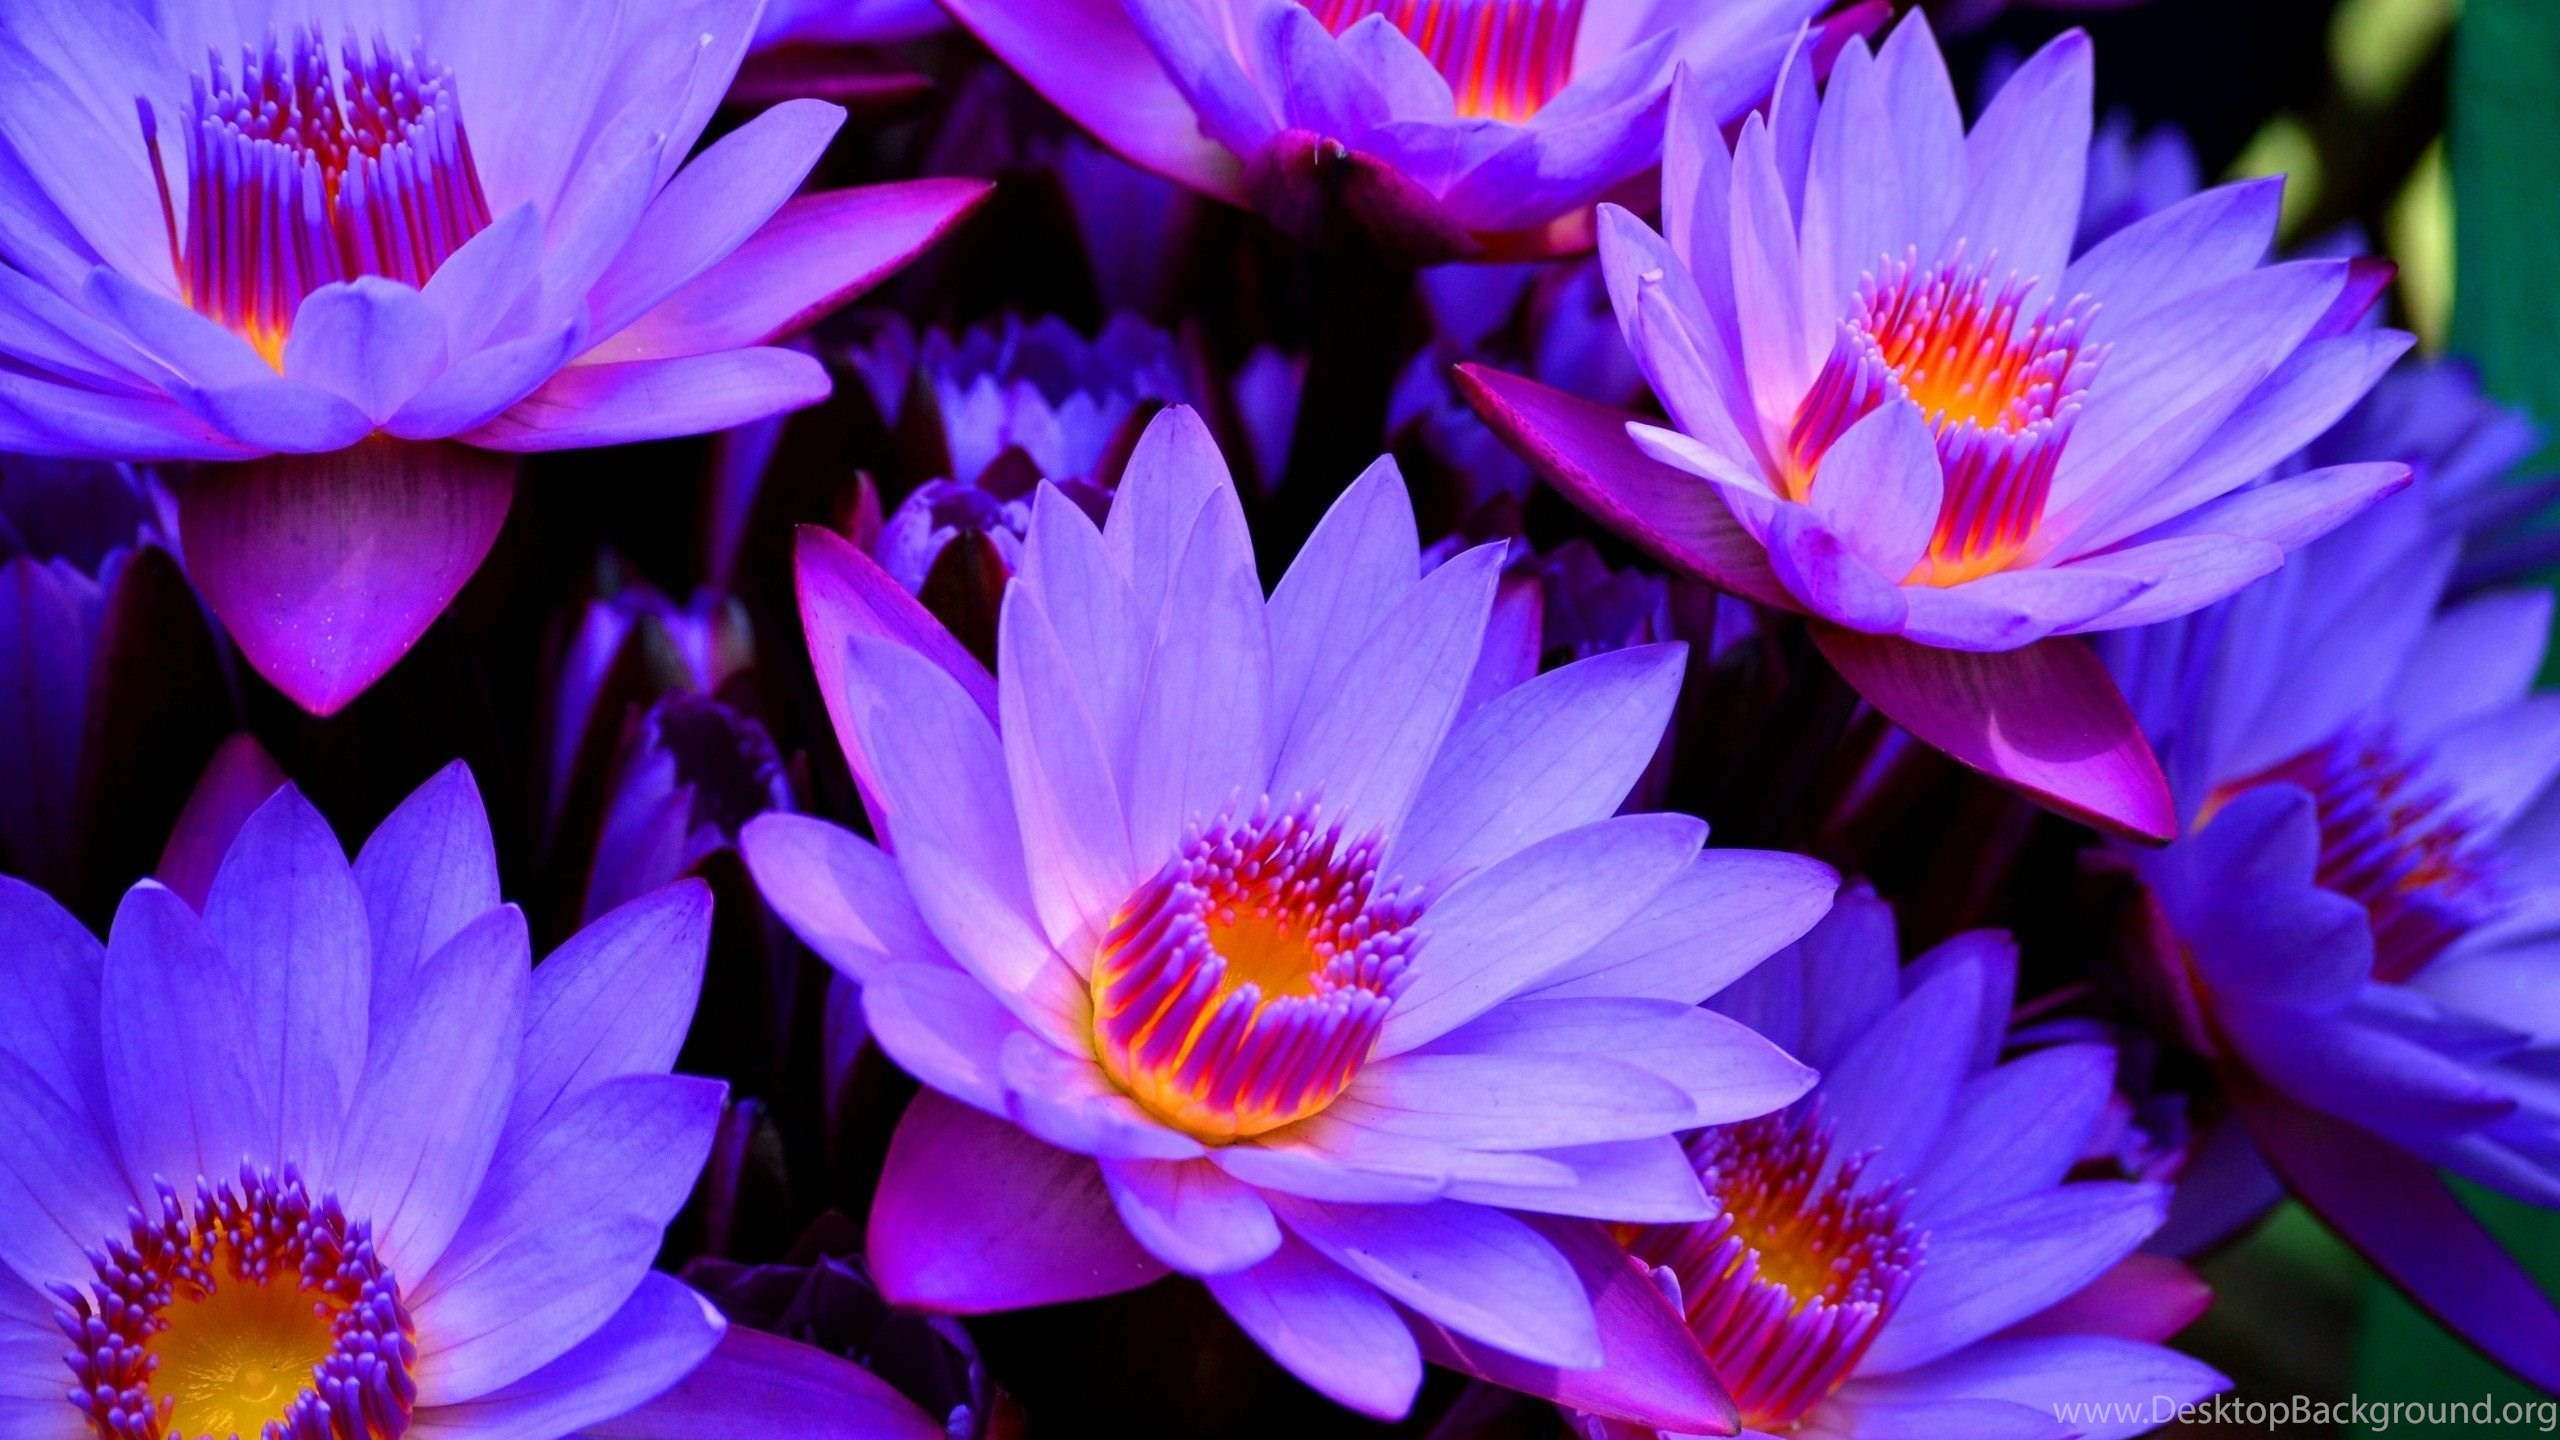 Blue Lotus Flower Wallpapers HD For Desktop In High Resolution